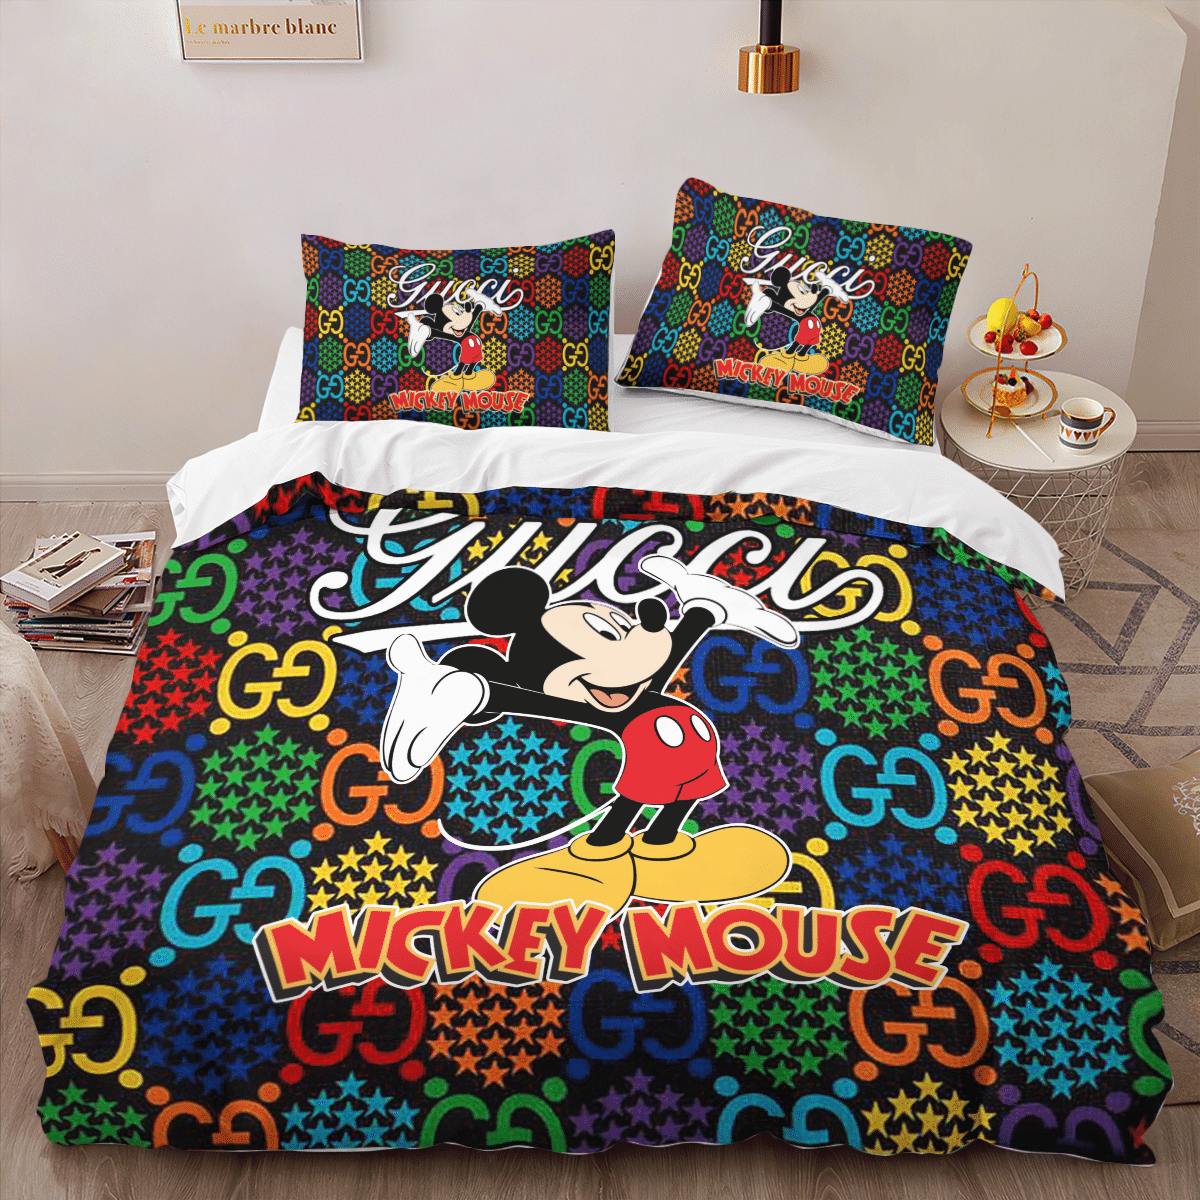 Mickey Mouse Gucci bedding set 2.1